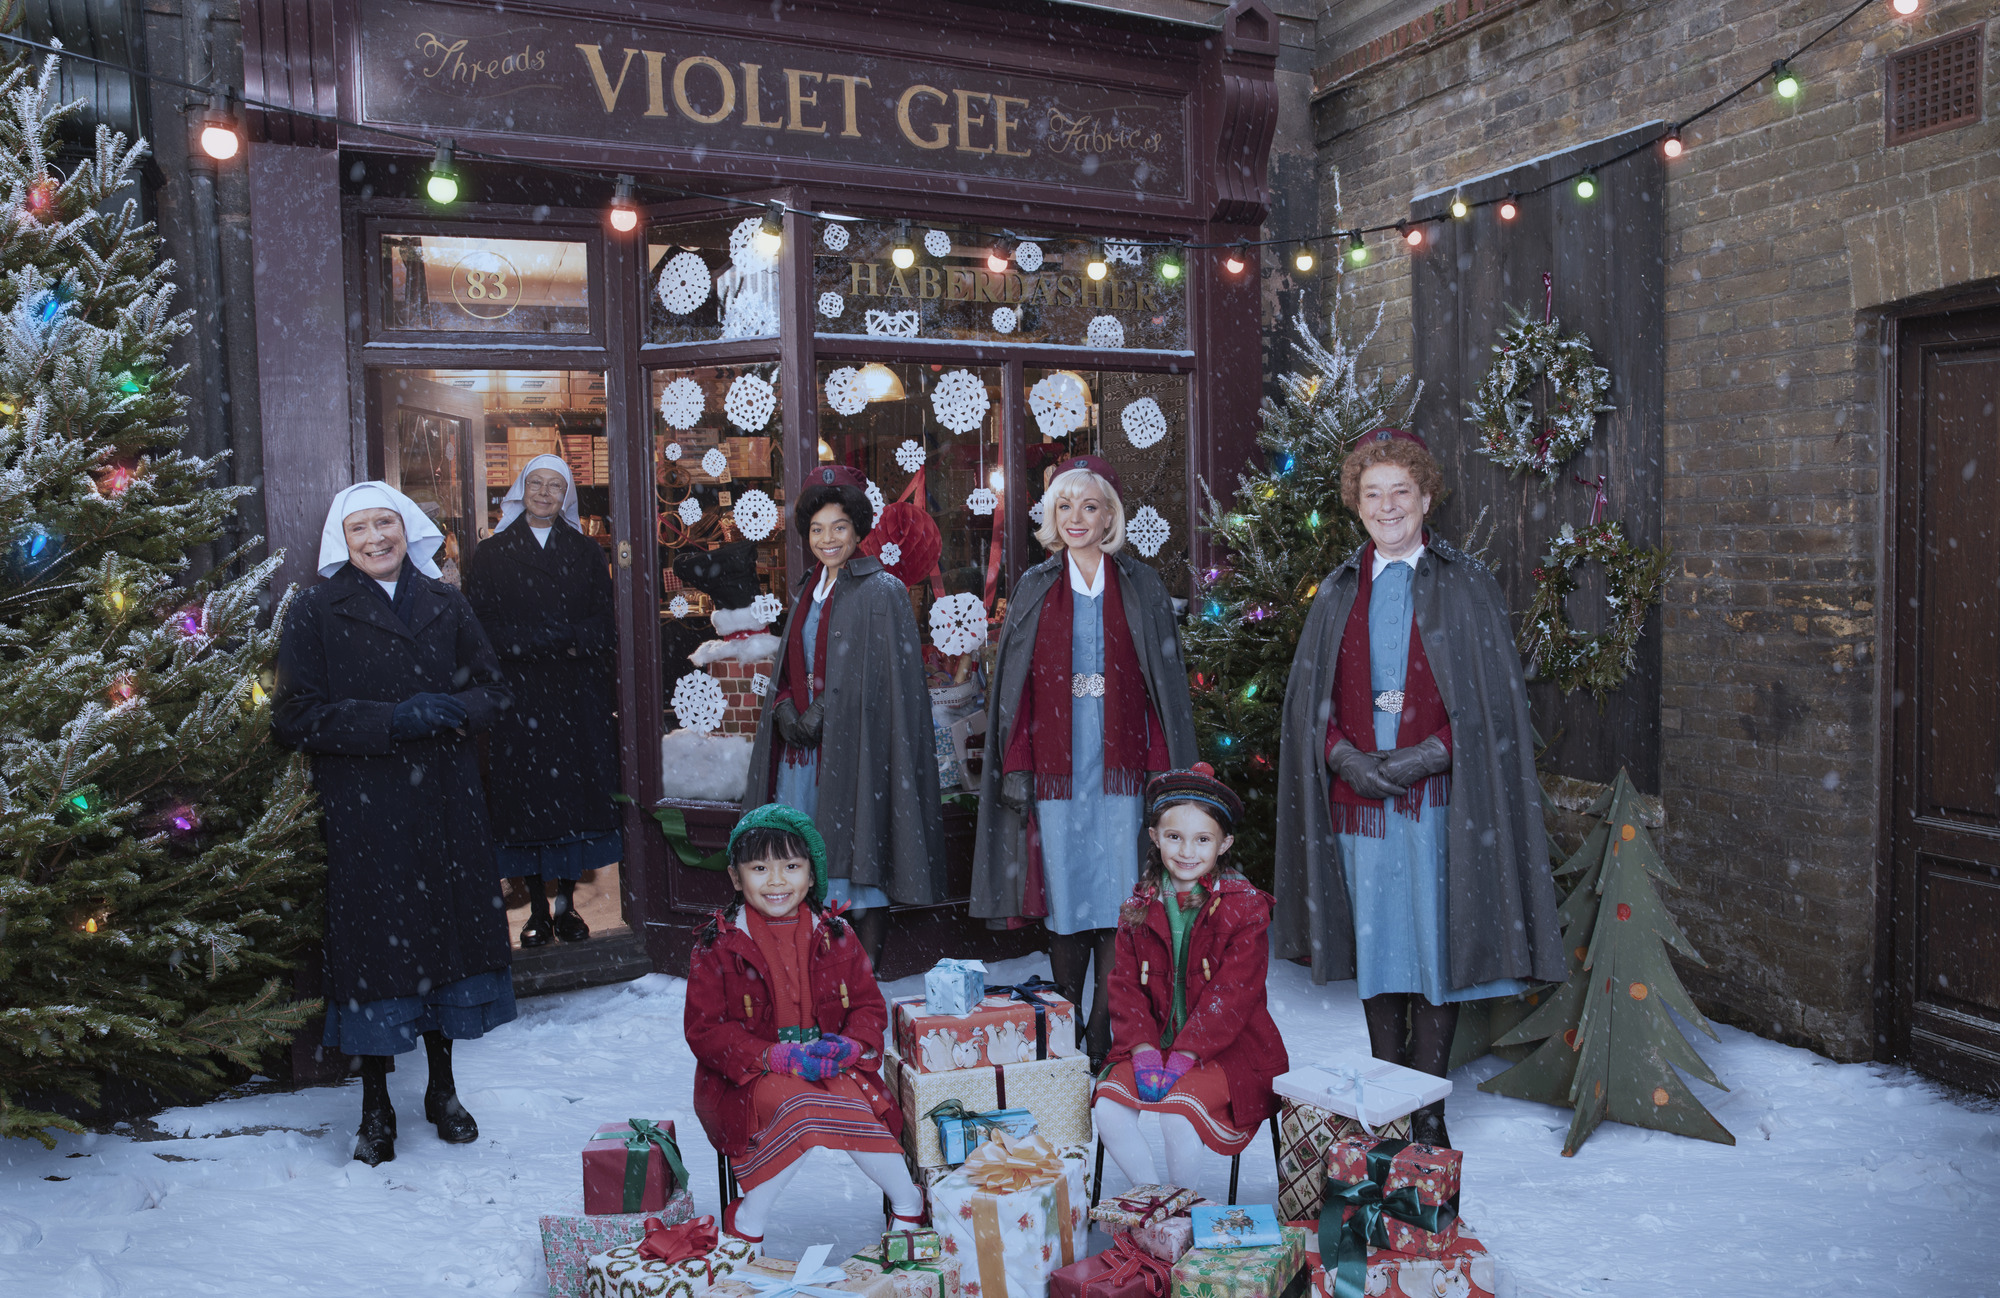 2021 Christmas Special The Call The Midwife 2021 Christmas Special Release Date Plot Cast Trailer